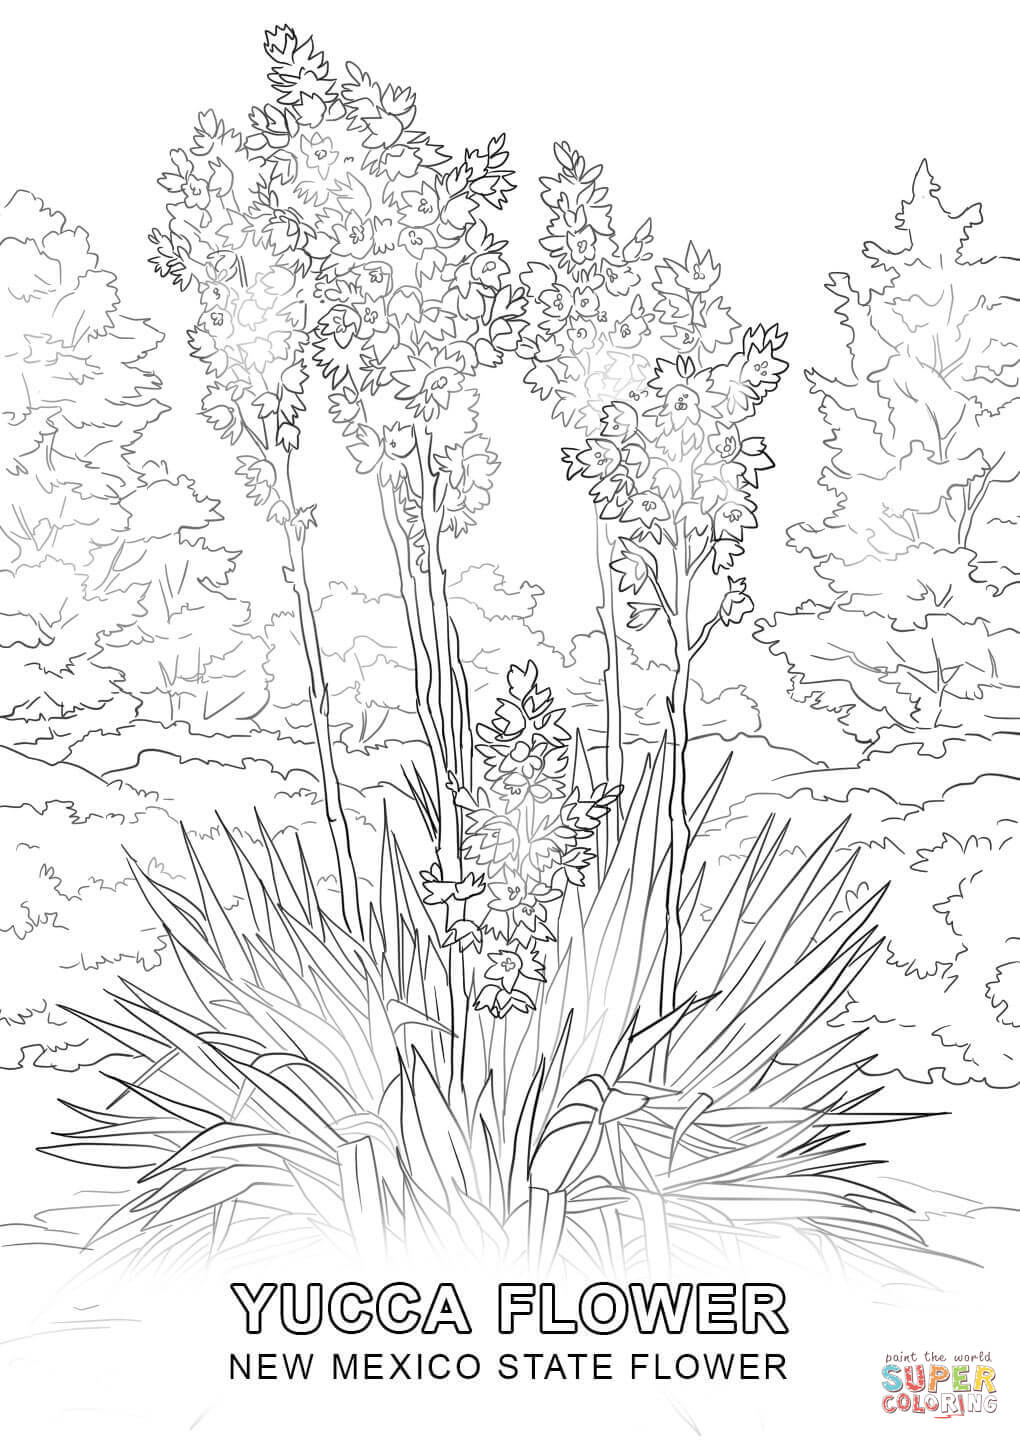 kentucky state flower new mexico state flower coloring page free printable kentucky flower state